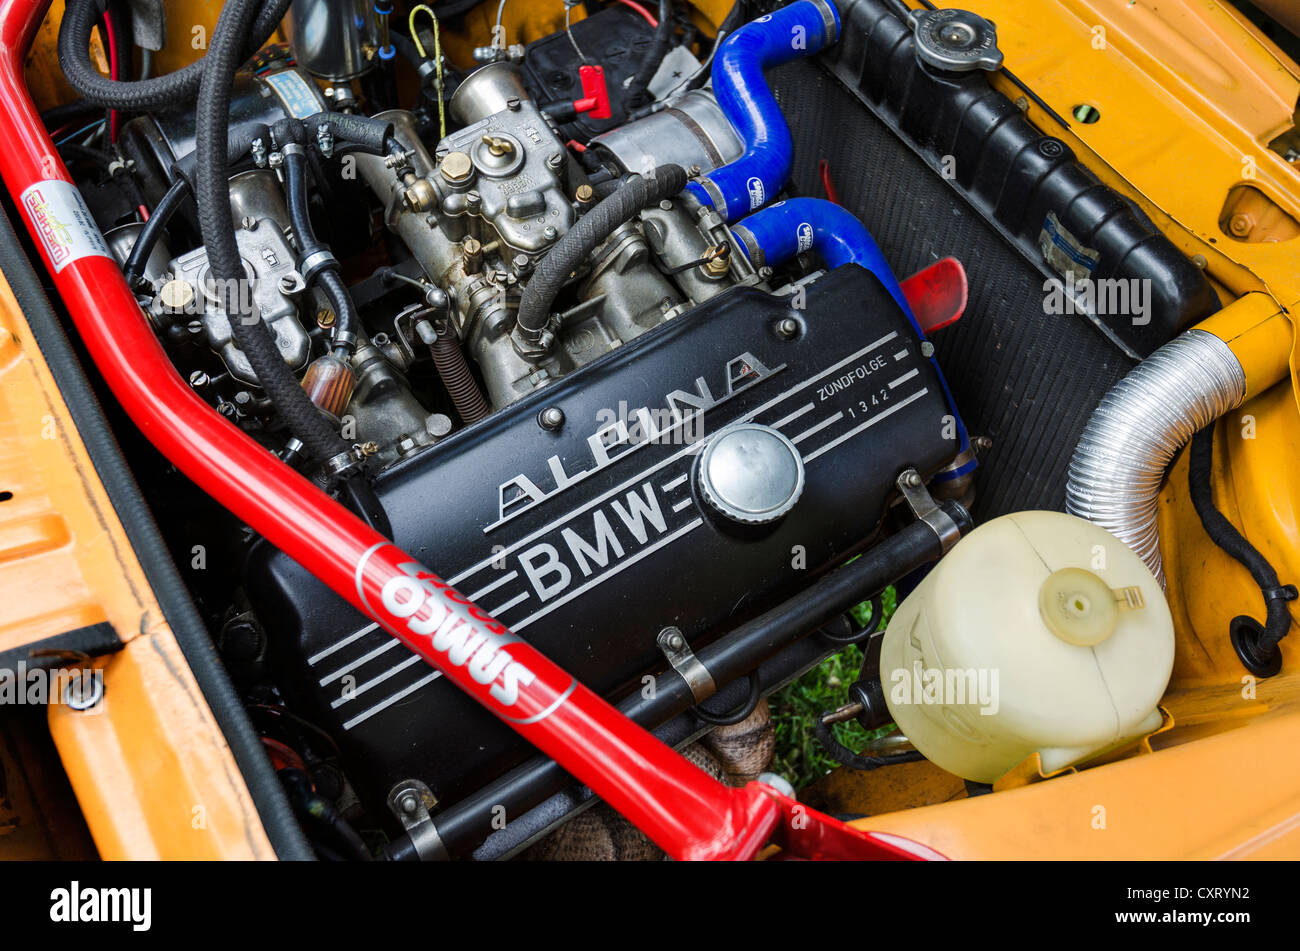 Bmw 2002 Tii Race Car >> View of the engine compartment of a BMW 2002 Ti Alpina, built in Stock Photo: 50928446 - Alamy